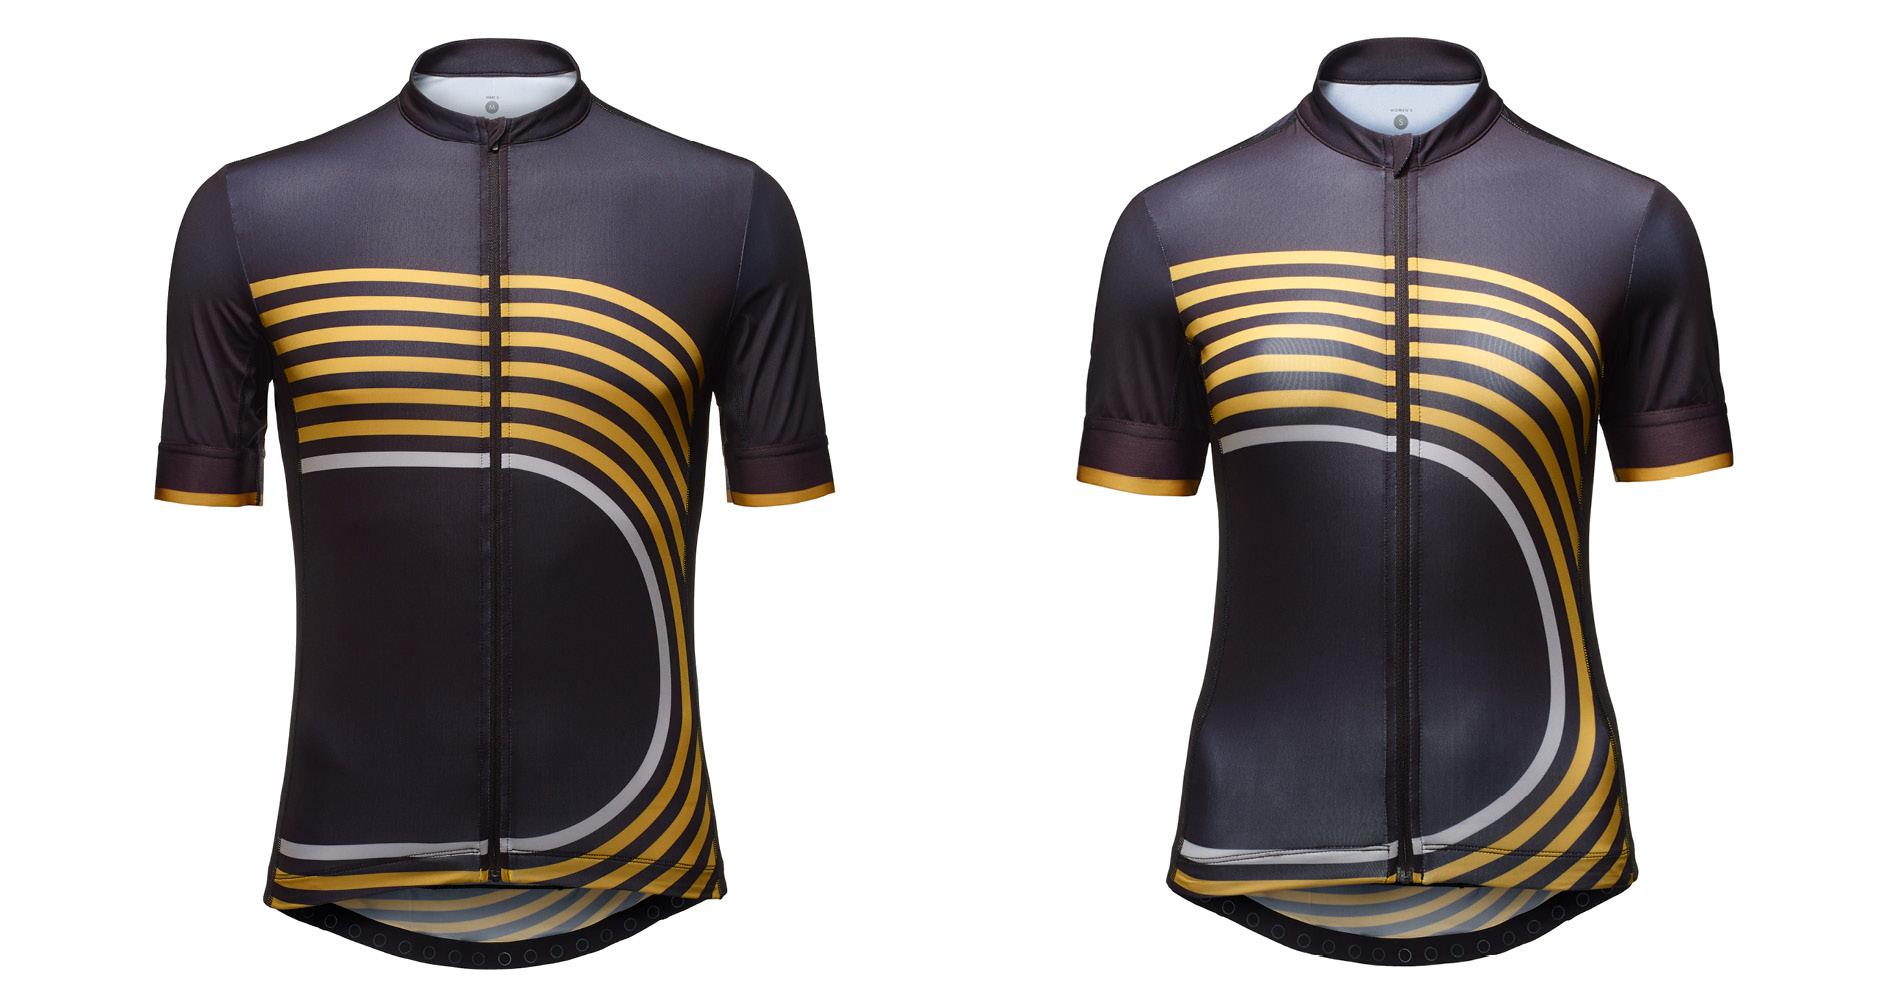 ChrisHoy_Vulpine_Jerseys1.jpg